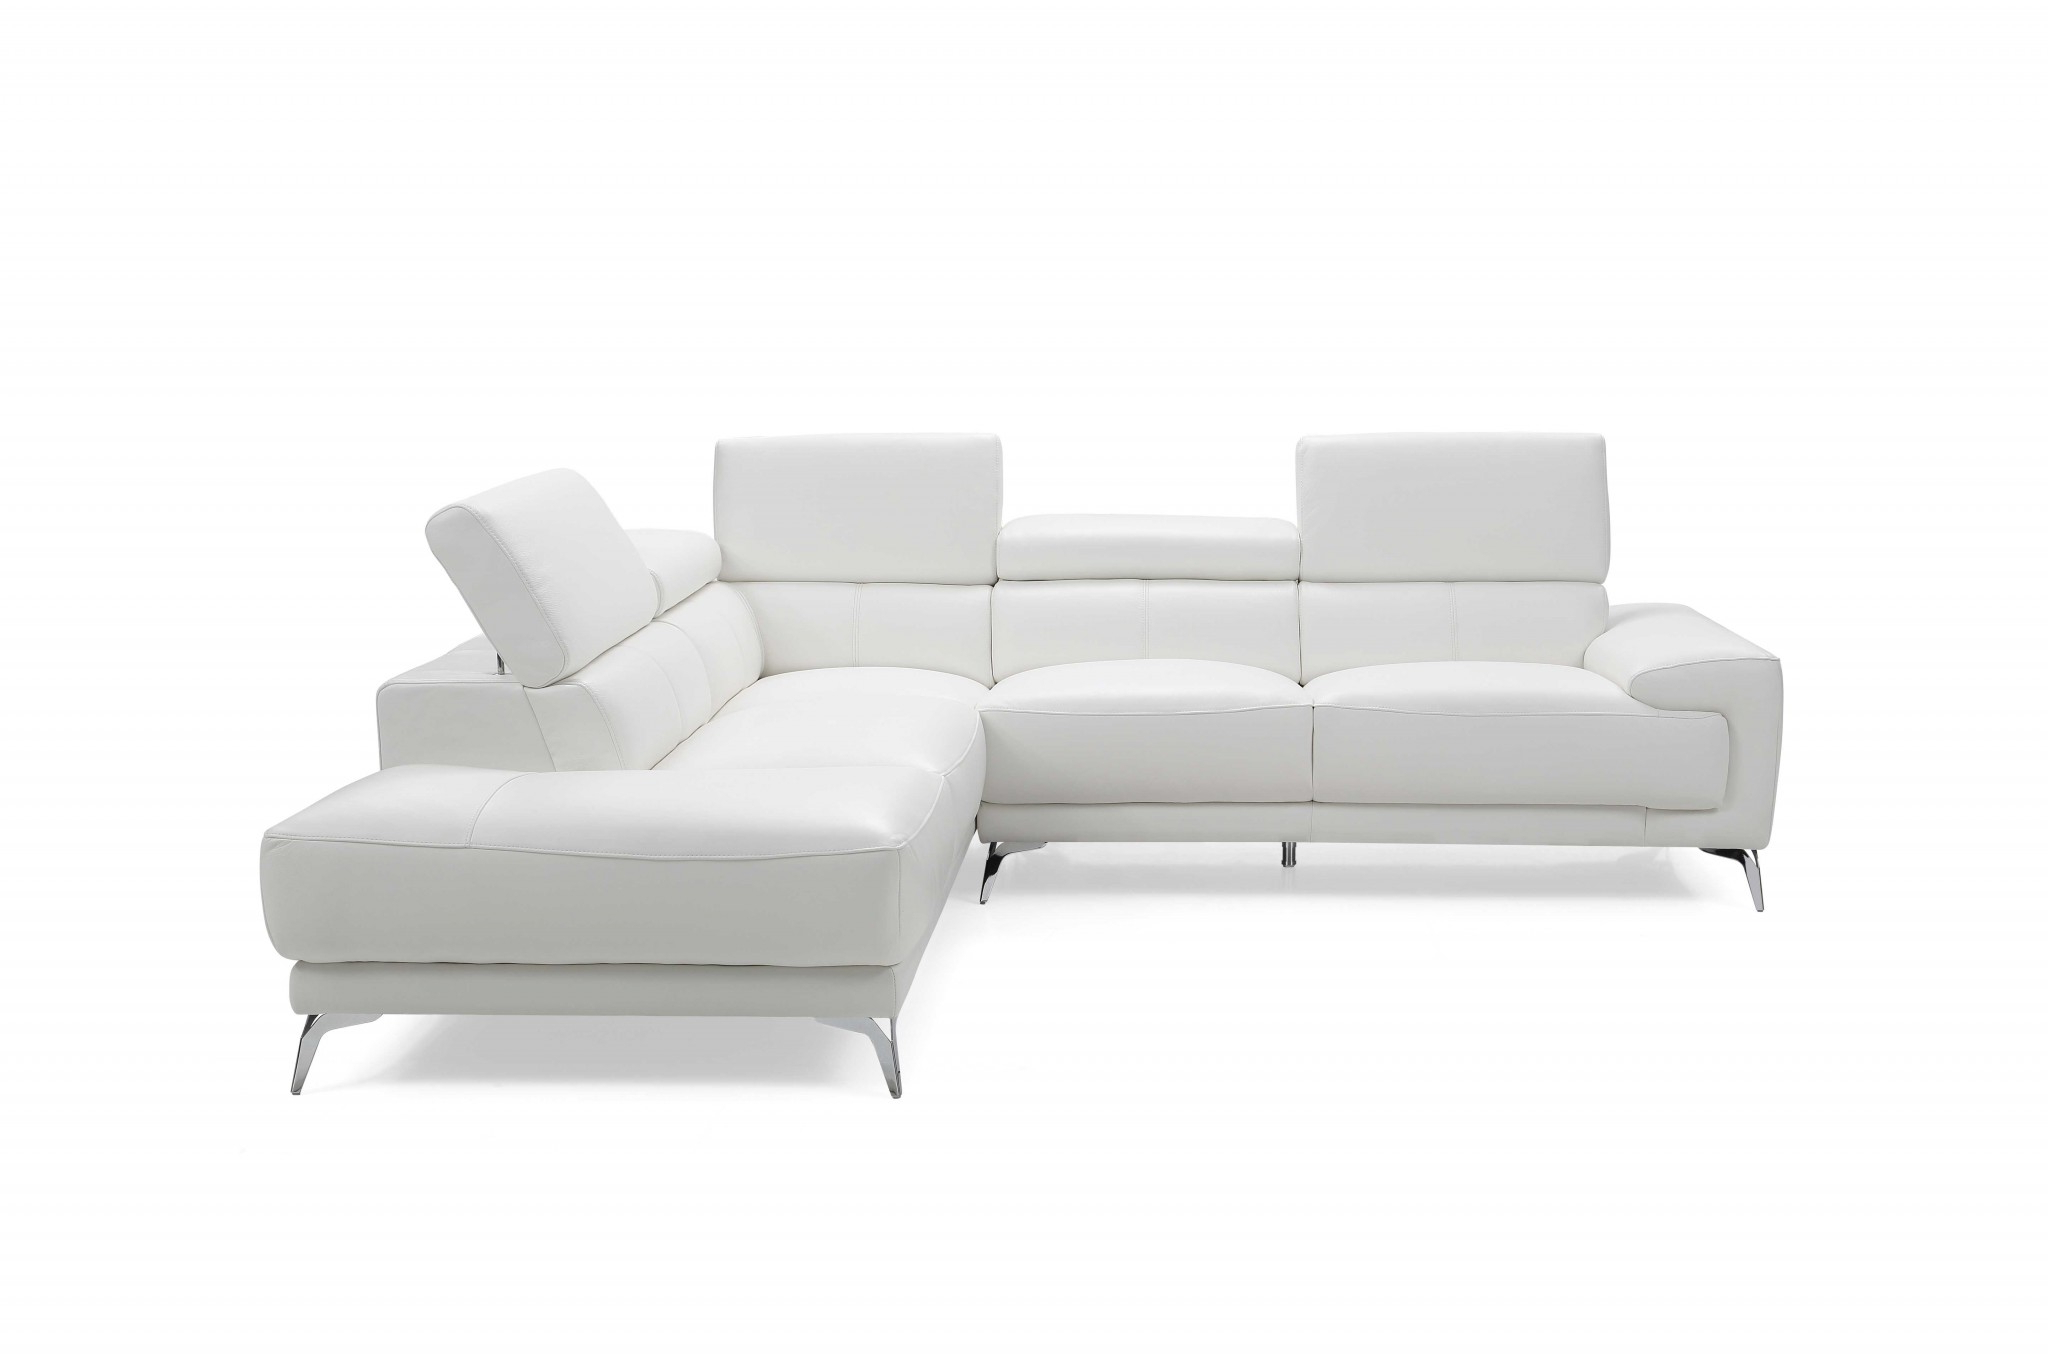 [%Sectional, Chaise On Right When Facing, White Top Grain With Regard To Latest Matilda 100% Top Grain Leather Chaise Sectional Sofas|Matilda 100% Top Grain Leather Chaise Sectional Sofas Throughout Popular Sectional, Chaise On Right When Facing, White Top Grain|Most Up To Date Matilda 100% Top Grain Leather Chaise Sectional Sofas Intended For Sectional, Chaise On Right When Facing, White Top Grain|Popular Sectional, Chaise On Right When Facing, White Top Grain With Regard To Matilda 100% Top Grain Leather Chaise Sectional Sofas%] (View 7 of 25)